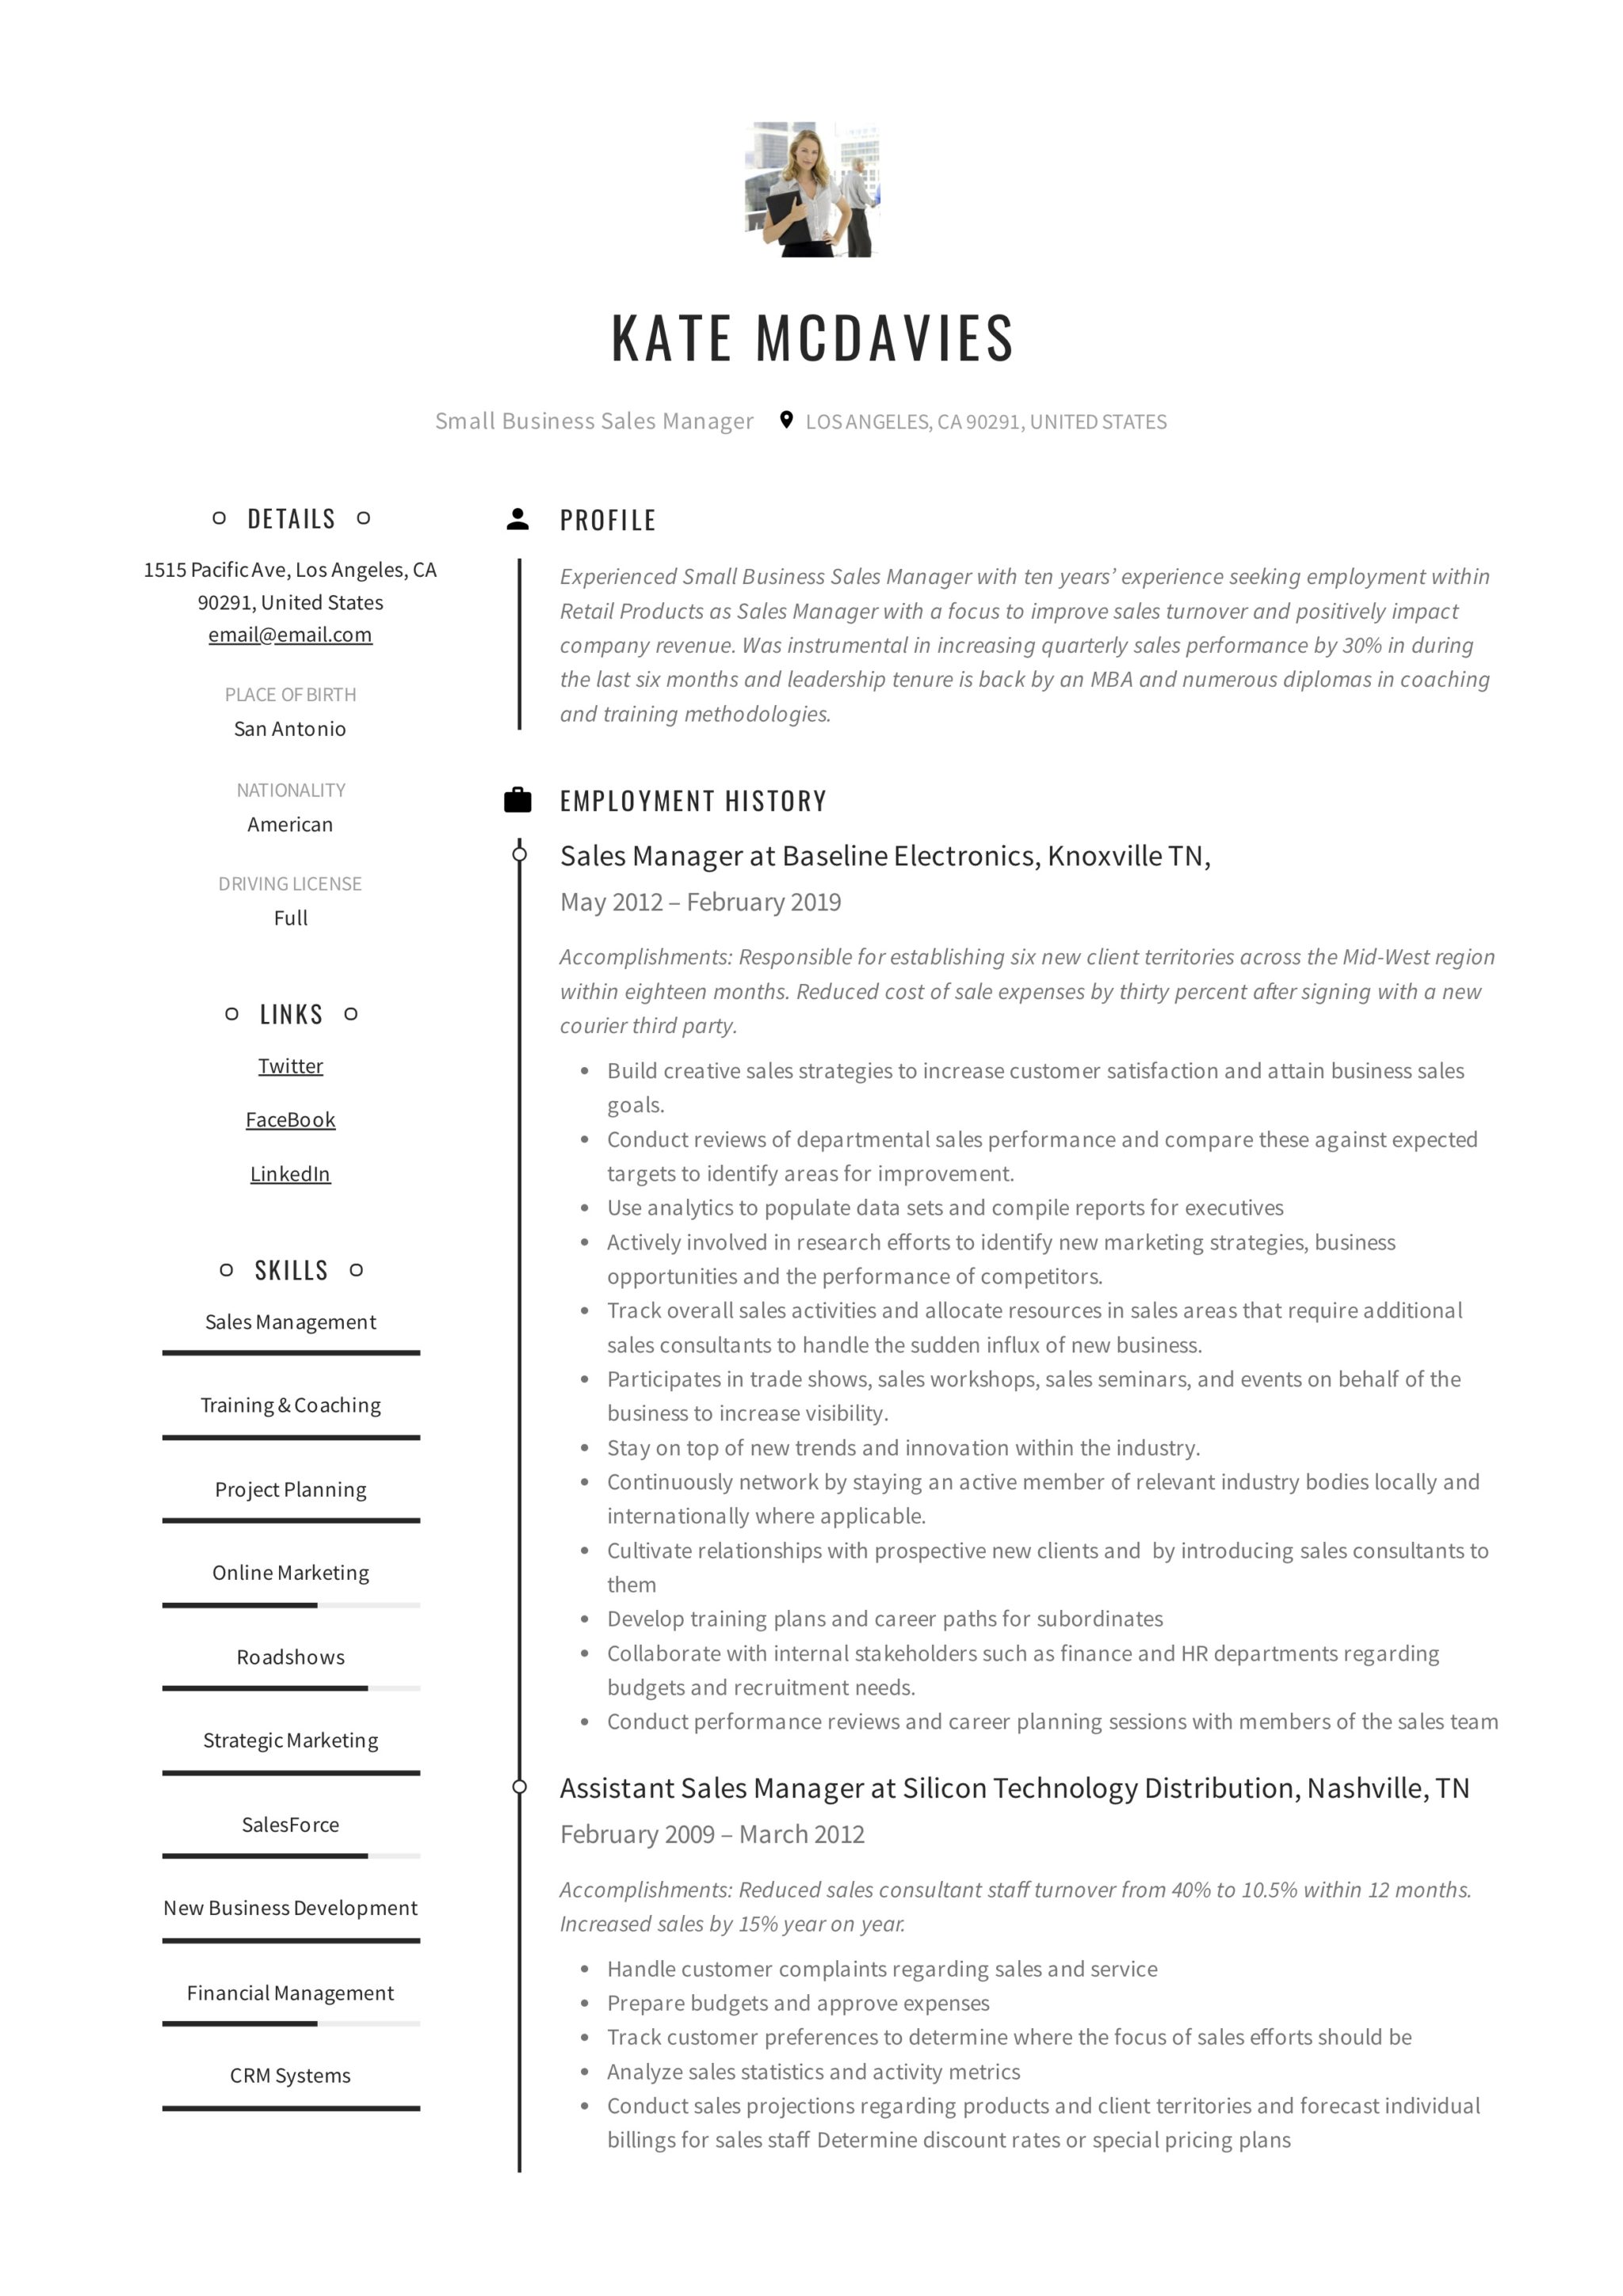 Small Business Sales Manager Resume Example 1